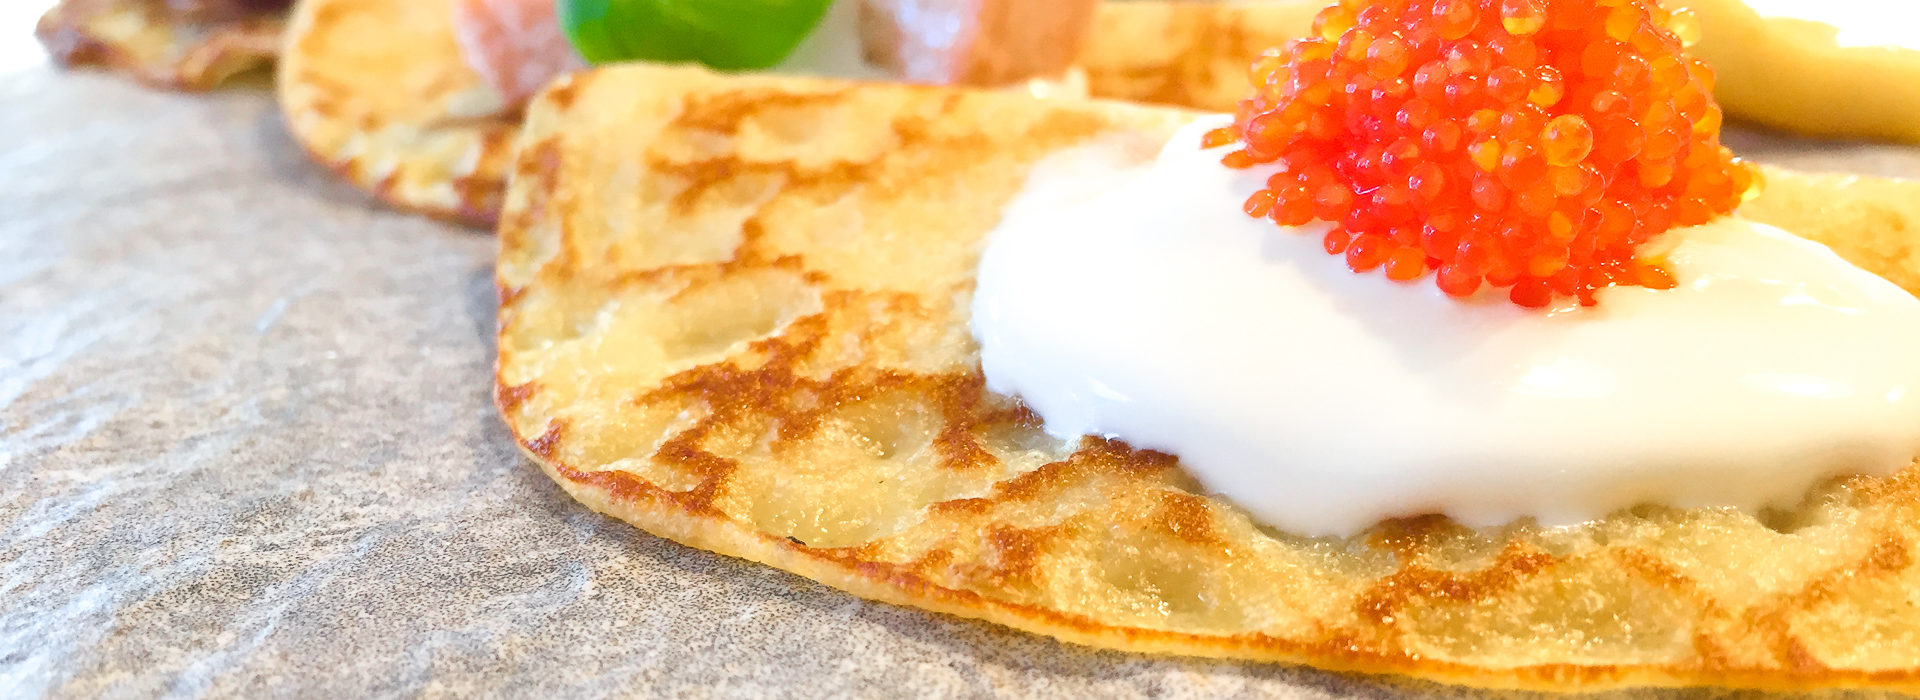 Crepes med laks